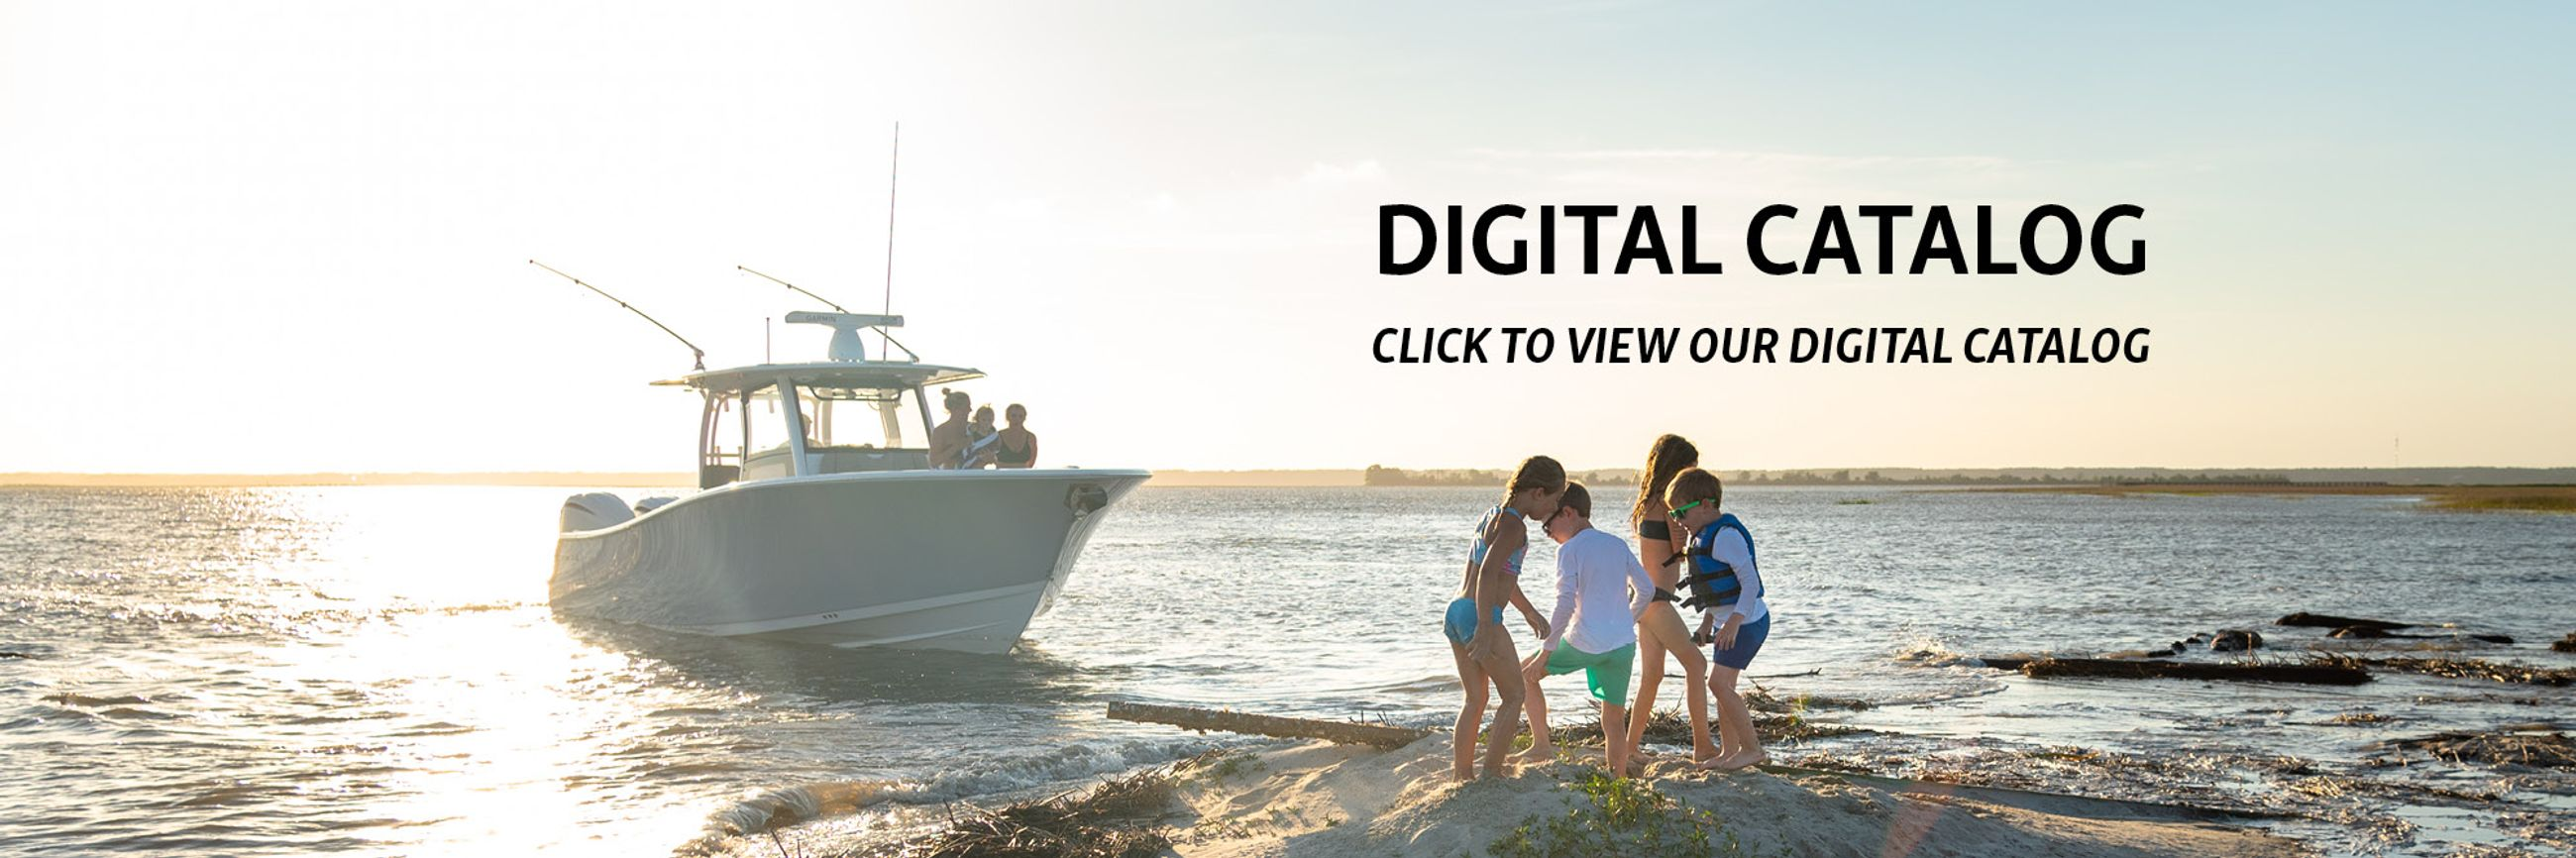 Image of kids playing on a sandbar while theres a gray Sportsman boat in the background